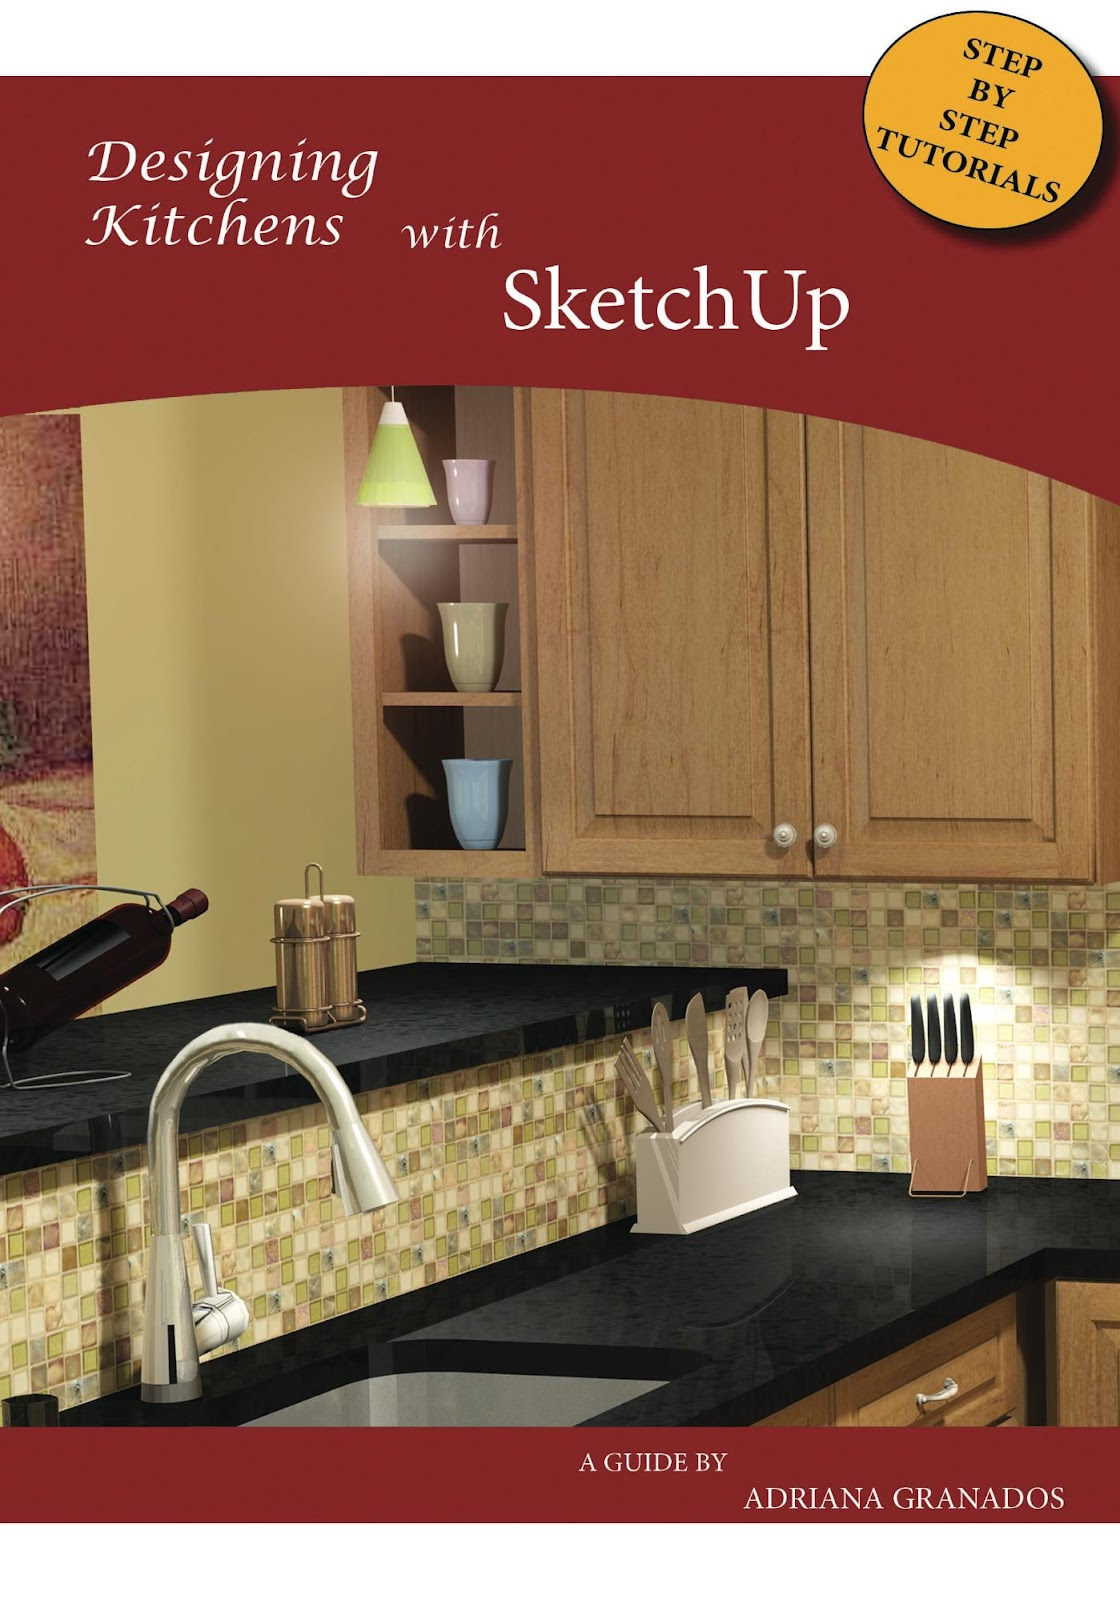 Designing Kitchens With SketchUp A New Book For Interior Designers